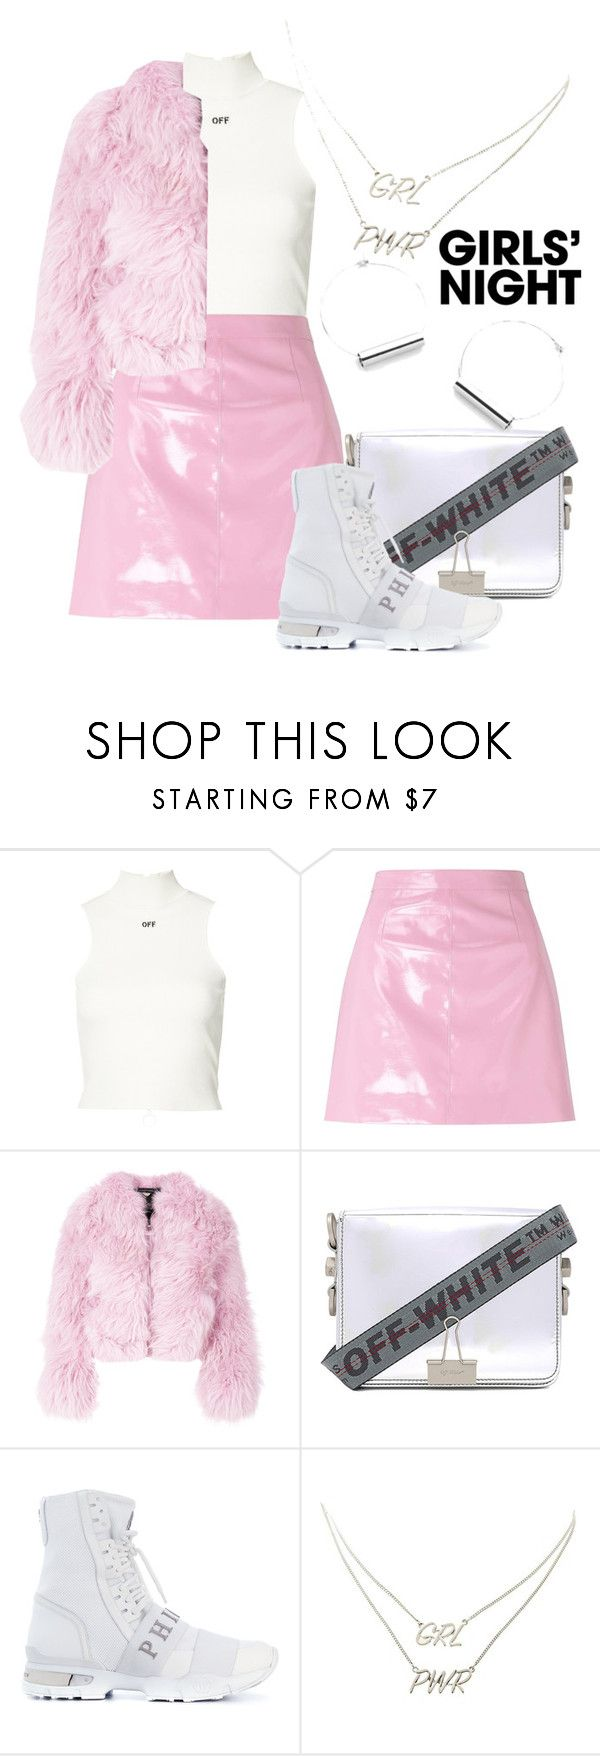 """Pinky Kay"" by memevianti on Polyvore featuring Off-White, Miss Selfridge, Charlotte Simone, Philipp Plein, Charlotte Russe, Pink, girlsnight, EdgyStyle and srtreetstyle"